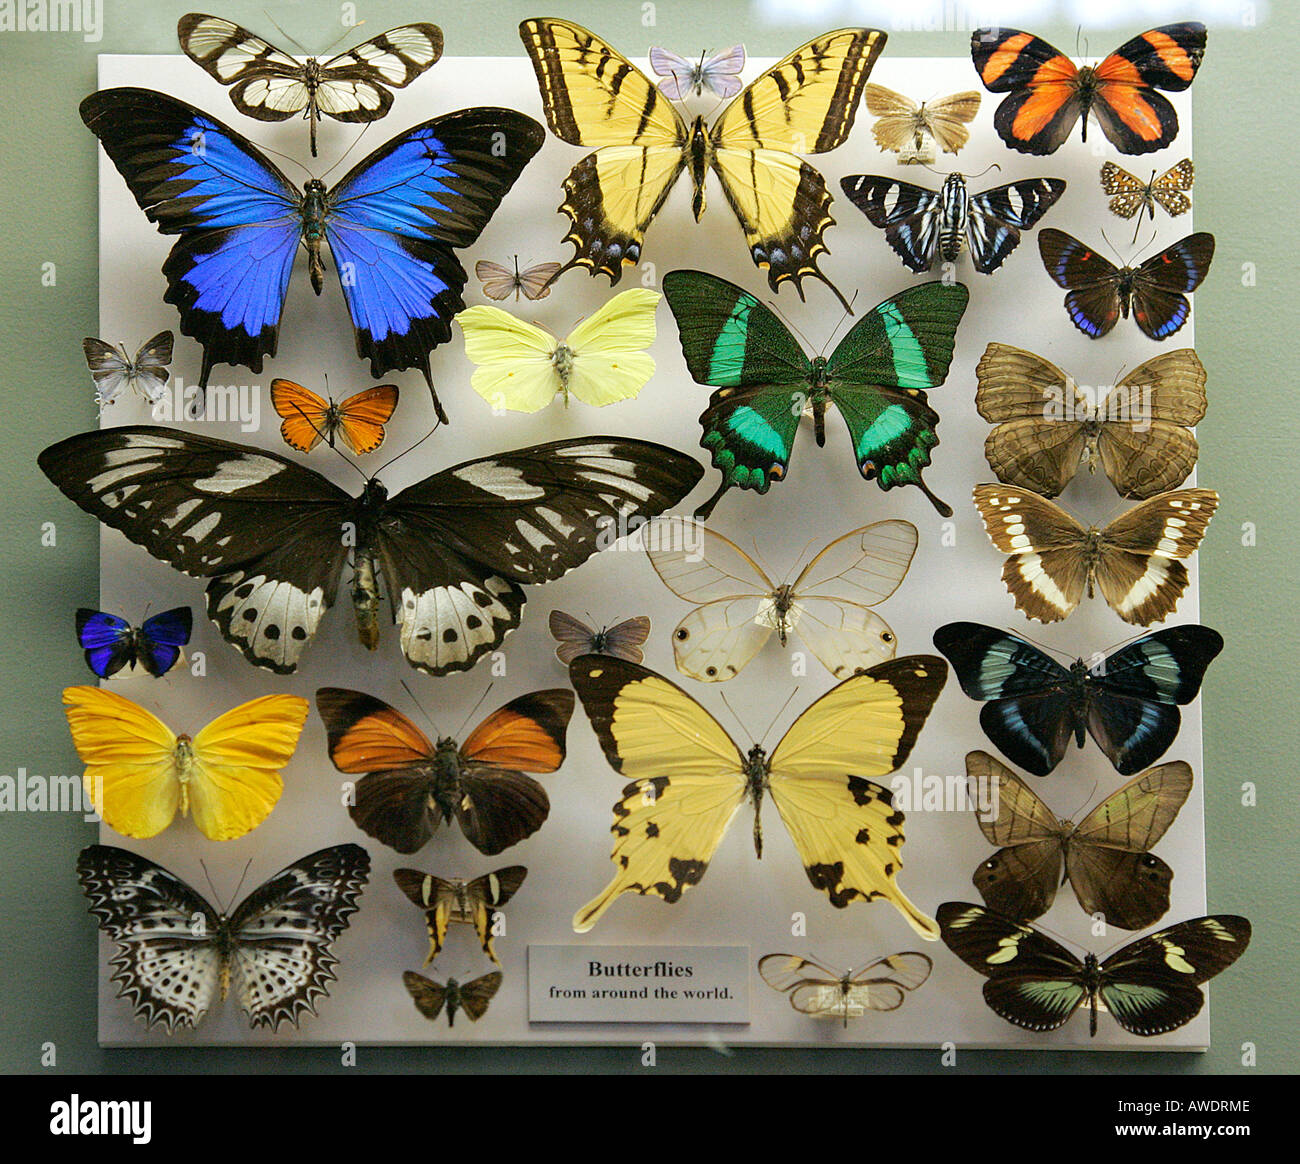 Merveilleux Butterflies Museum Display Case Butterfly Displayed Beauty Bug Diurnal  Feelers Collecting Varied Variety Order Dried Died Nature